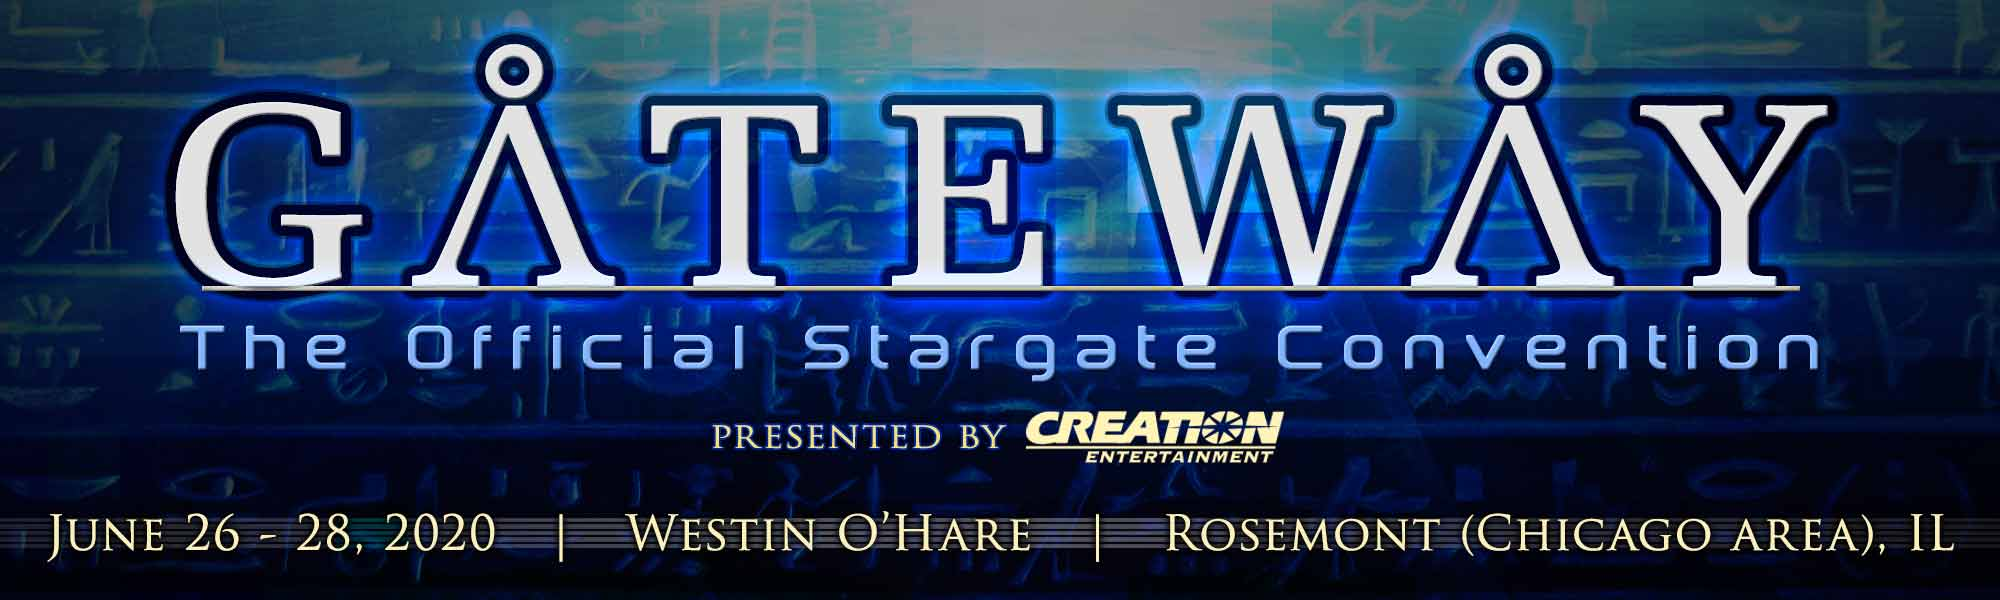 Creation Entertainment's presents Gateway: The Official Stargate Convention